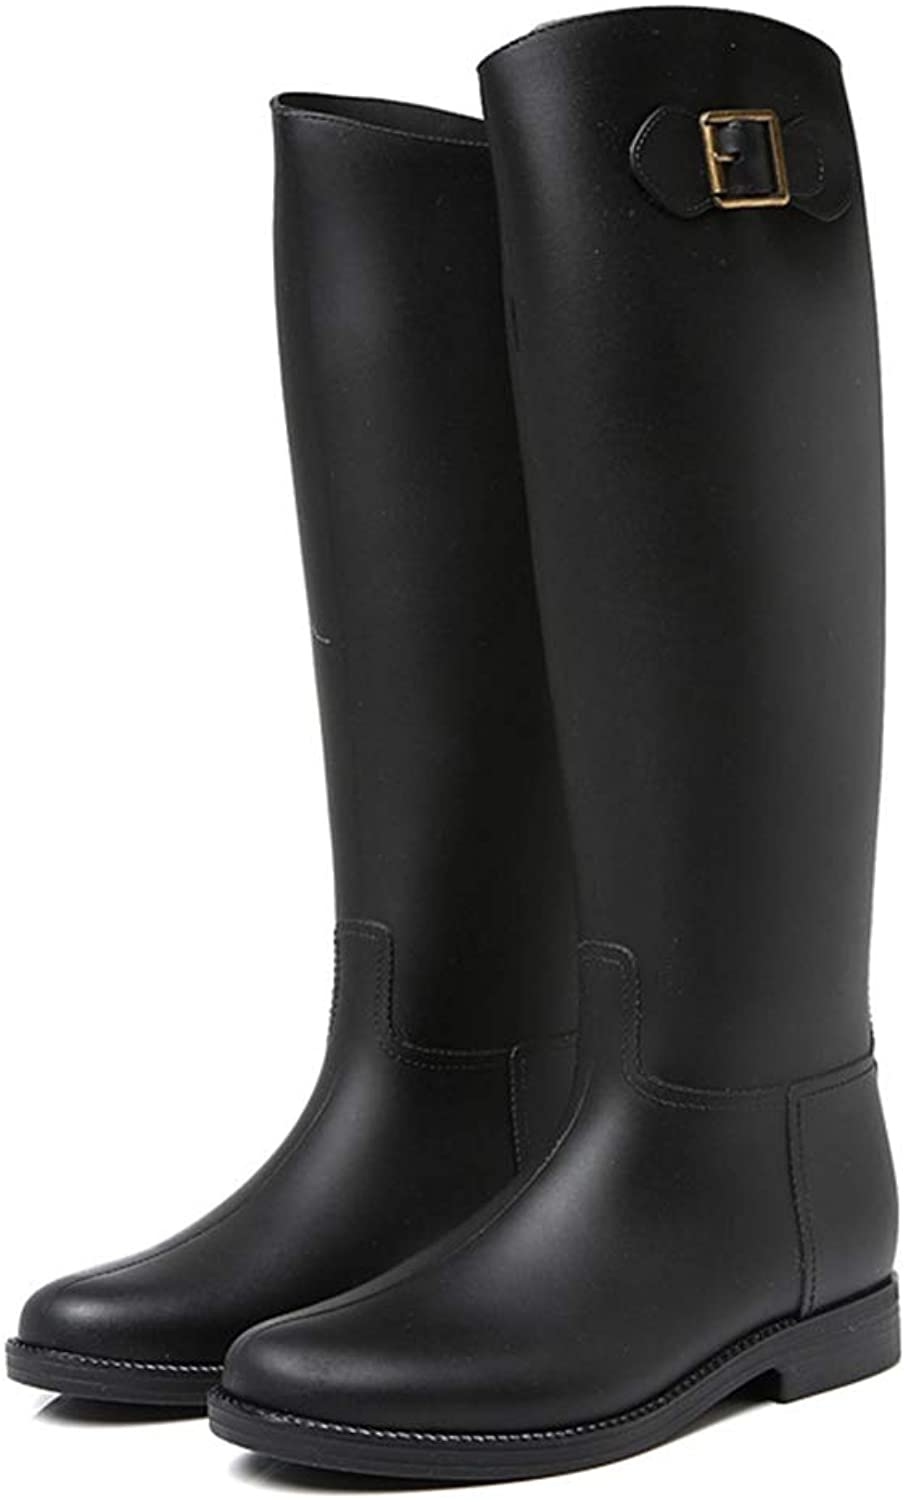 Women's Waterproof Rubber Rain Boots